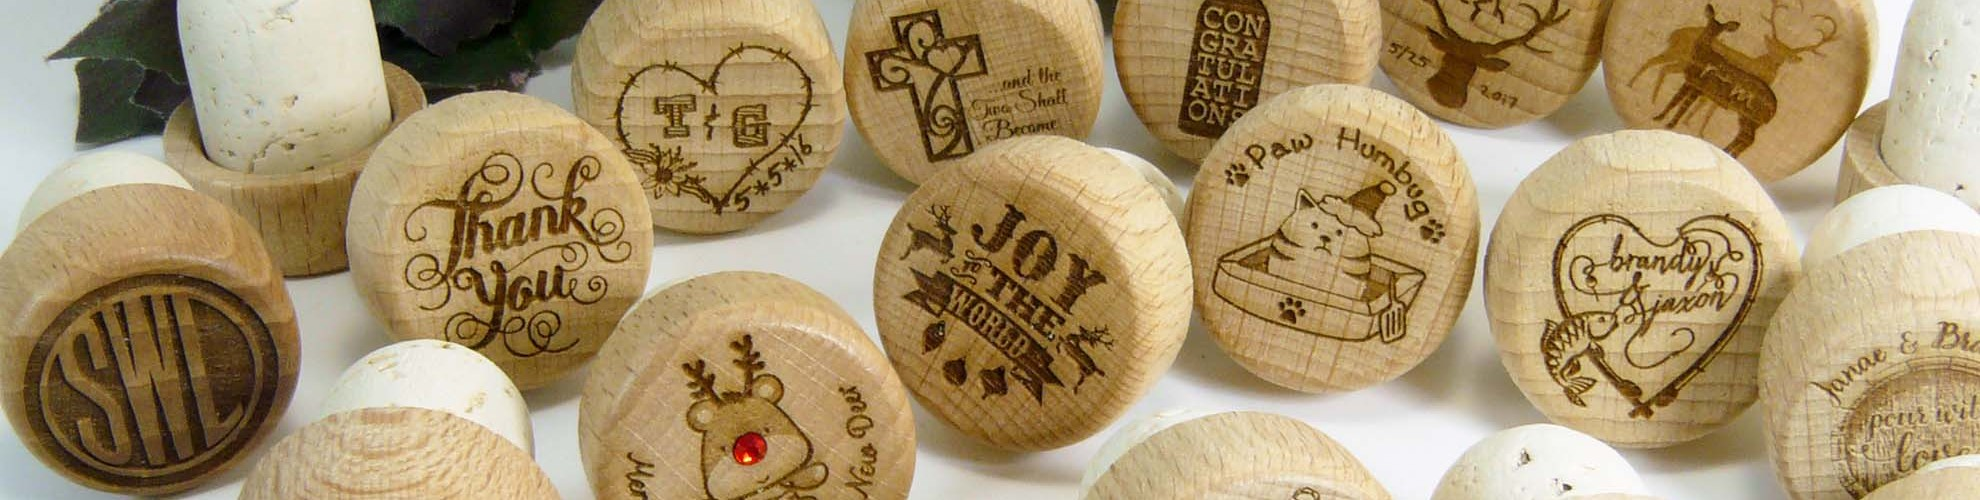 personalized laser engraved wine stoppers